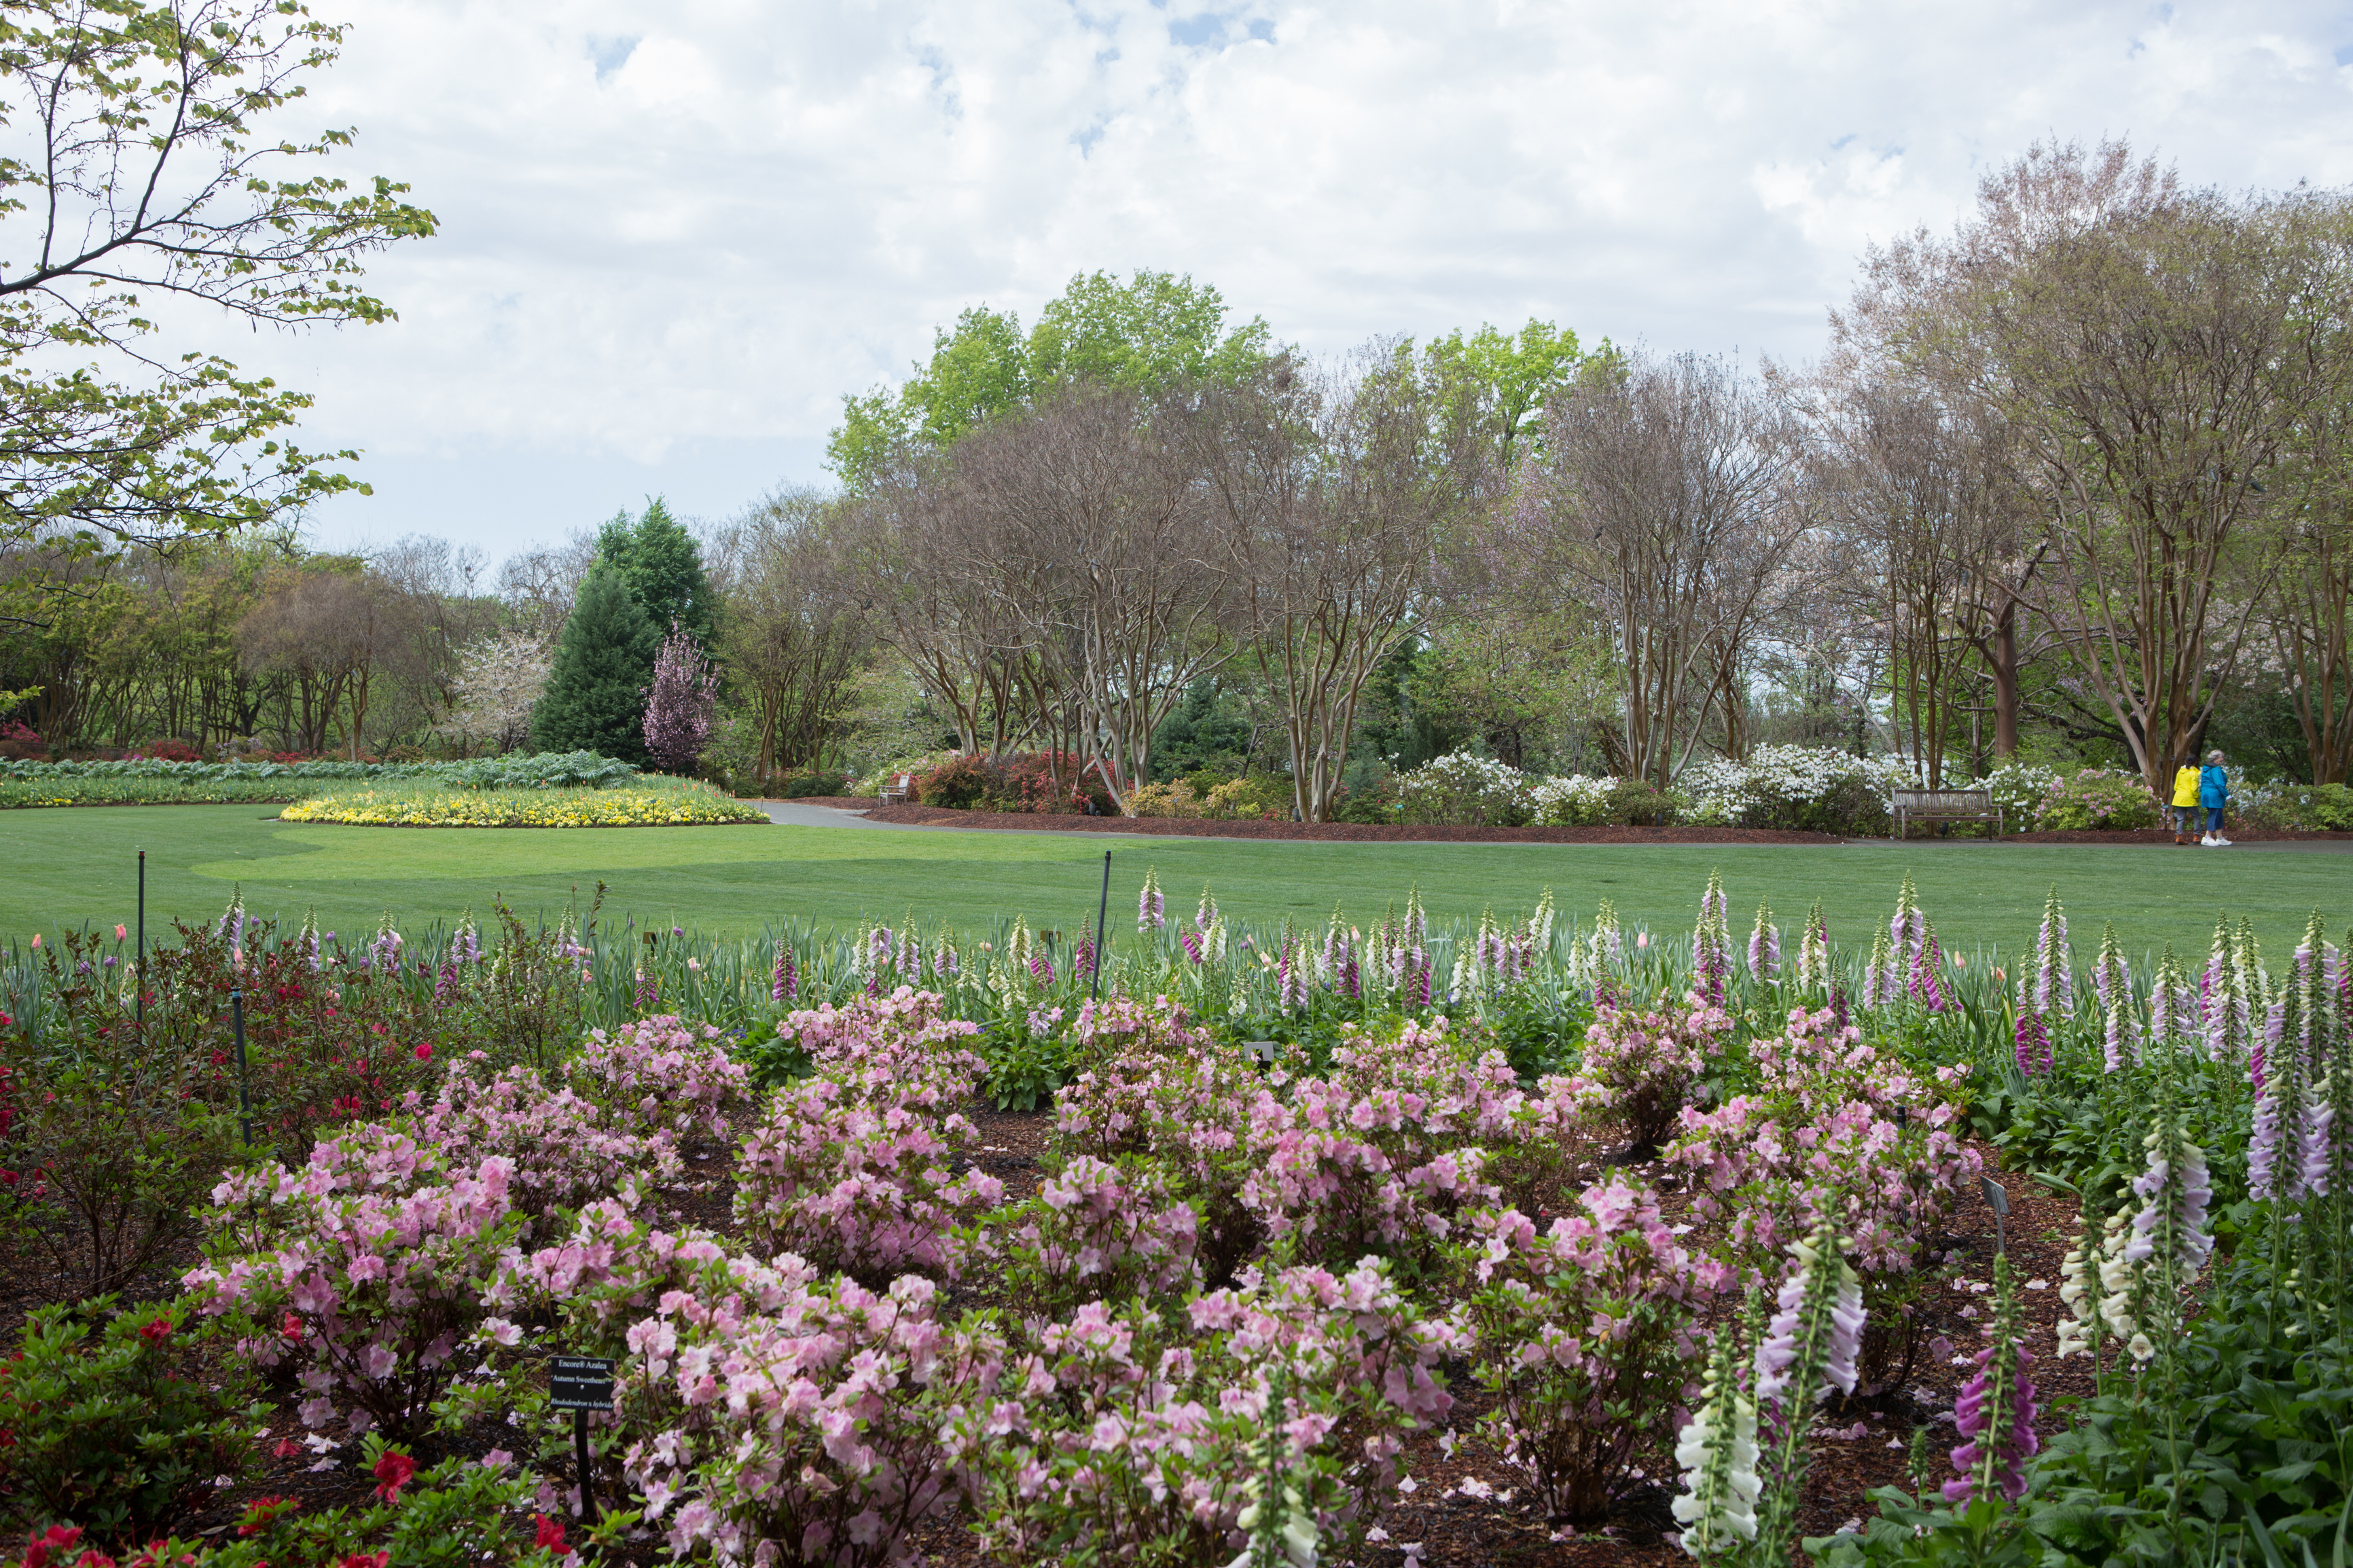 Soak Up Spring At The Dallas Arboretum And Botanical Garden